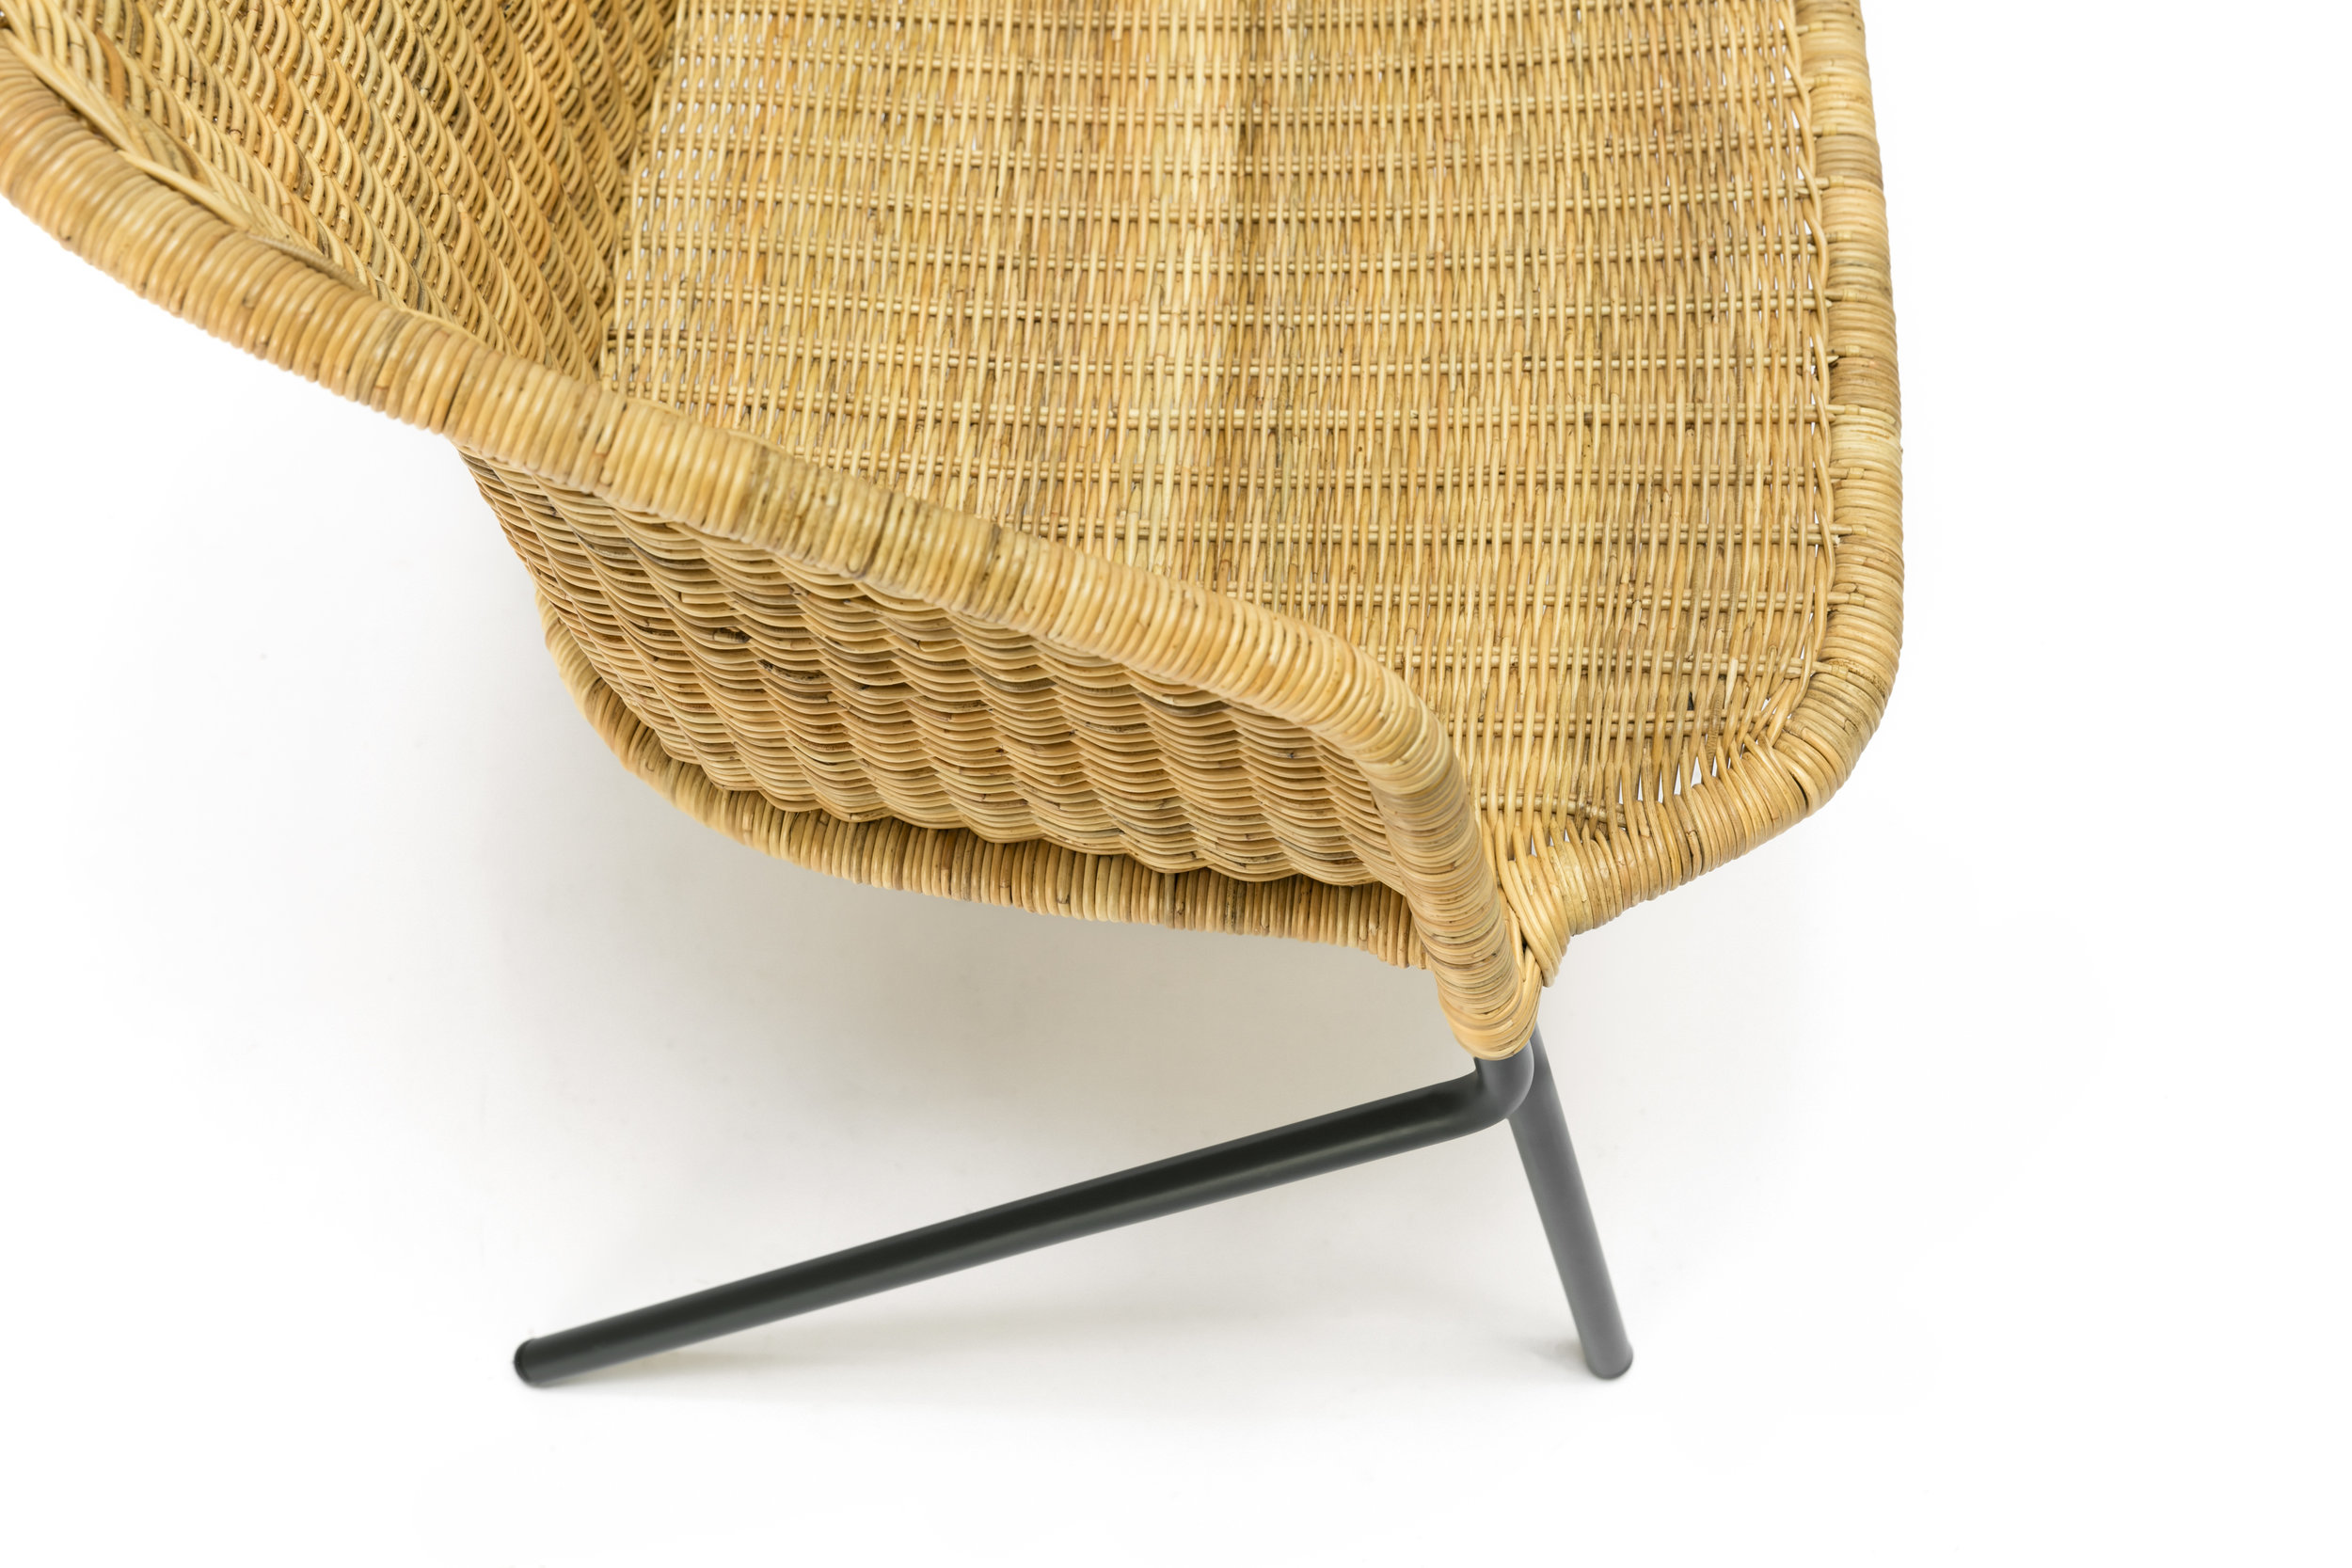 The Kakī Lounge Chair